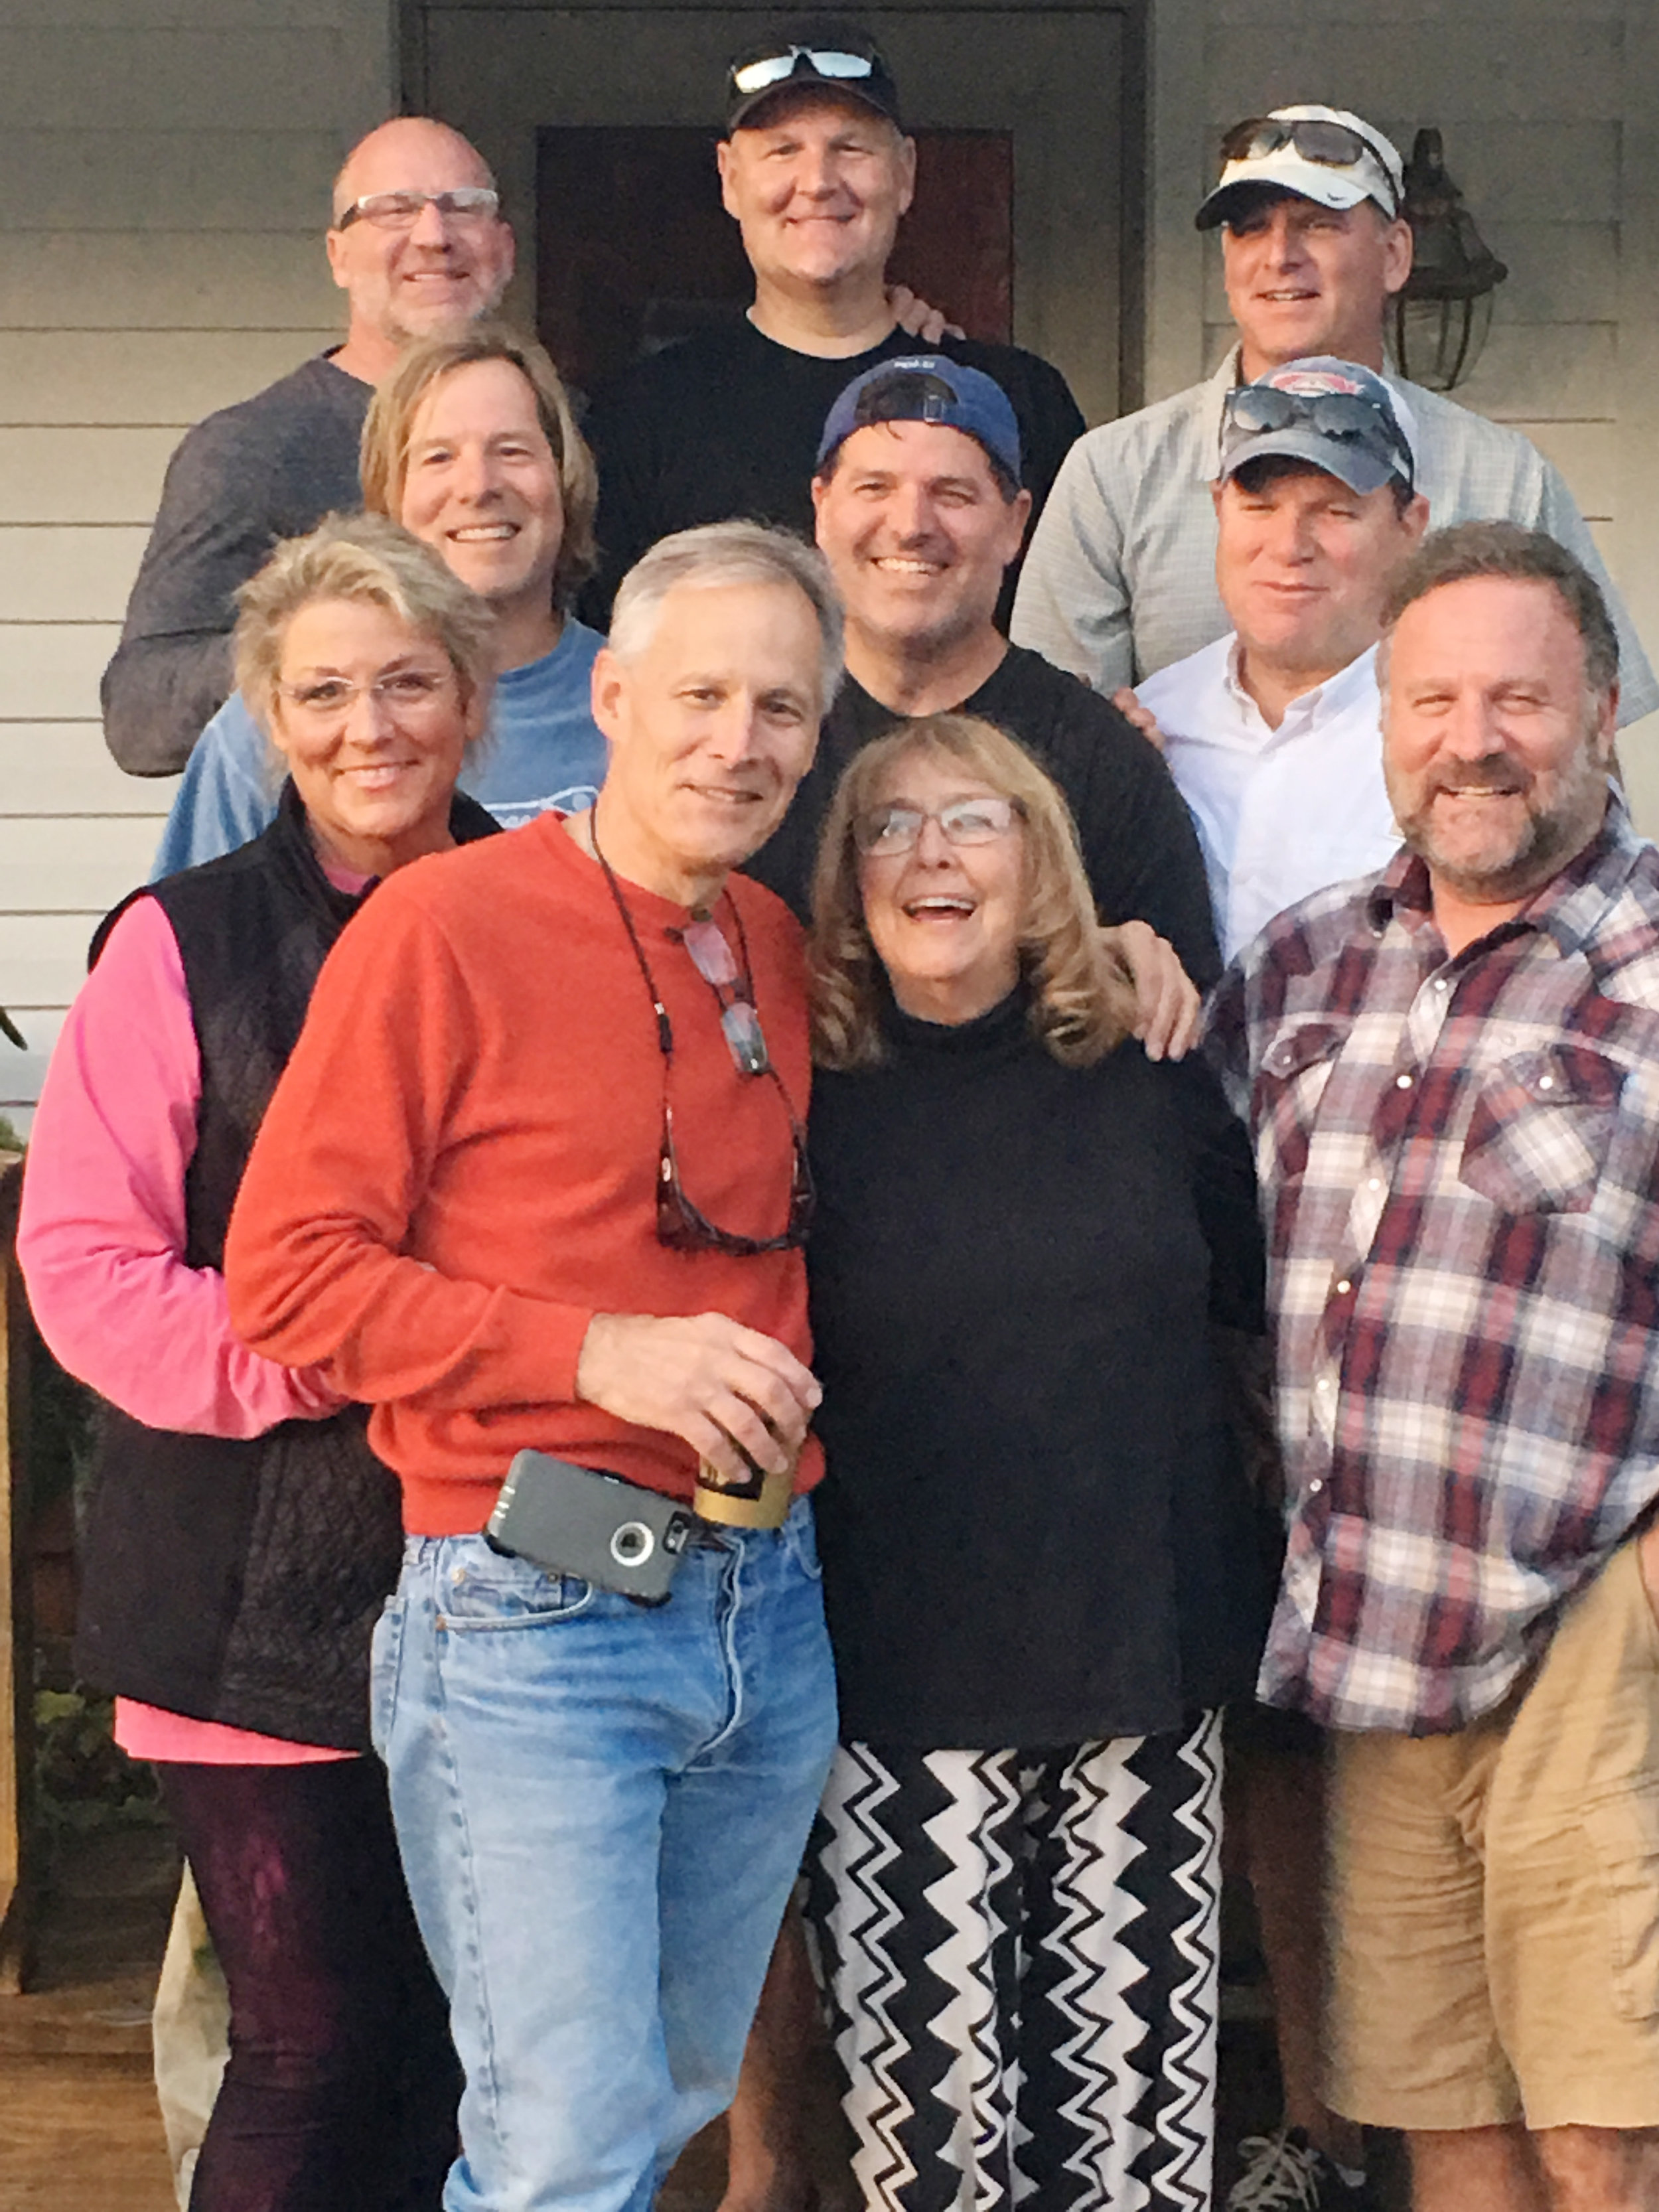 ^ Mary Ellen (left) celebrated Thanksgiving 2016 with her mother and eight brothers. With her are: (first row) oldest brother, Mike; mother, Donna; and second to the oldest brother, Mark.  (second row) brothers John, Chris, and Tom; and (back row) brothers David, Matt, and Pat